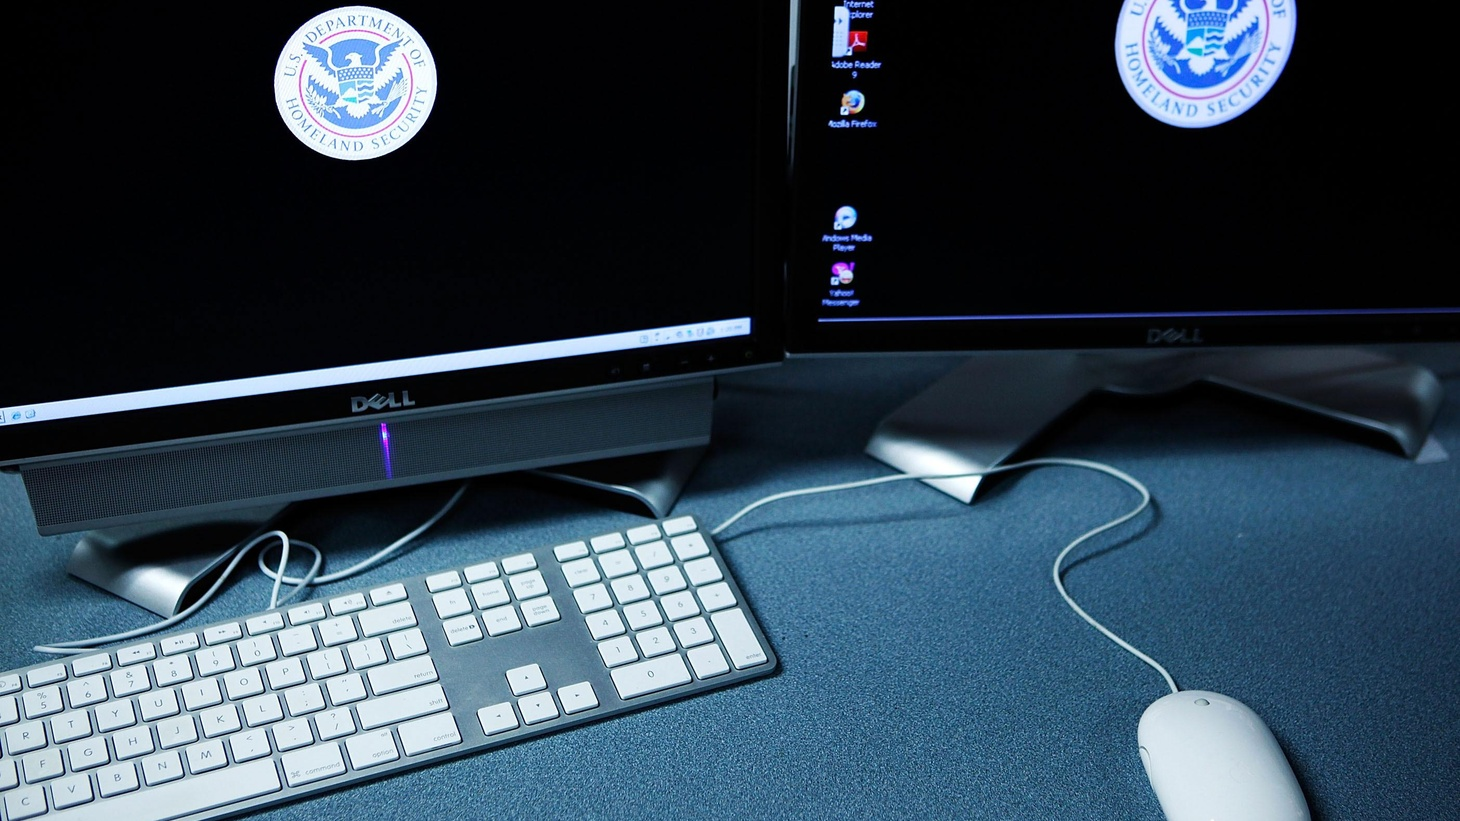 The Internet is now essential to the global economy, the military and politics. But users are vulnerable to attacks from the inside as well as the outside. We talk with one of America's most notorious cyber criminals, now a security consultant, and others about cyber security. Also, what's left of the UN conference on climate change.